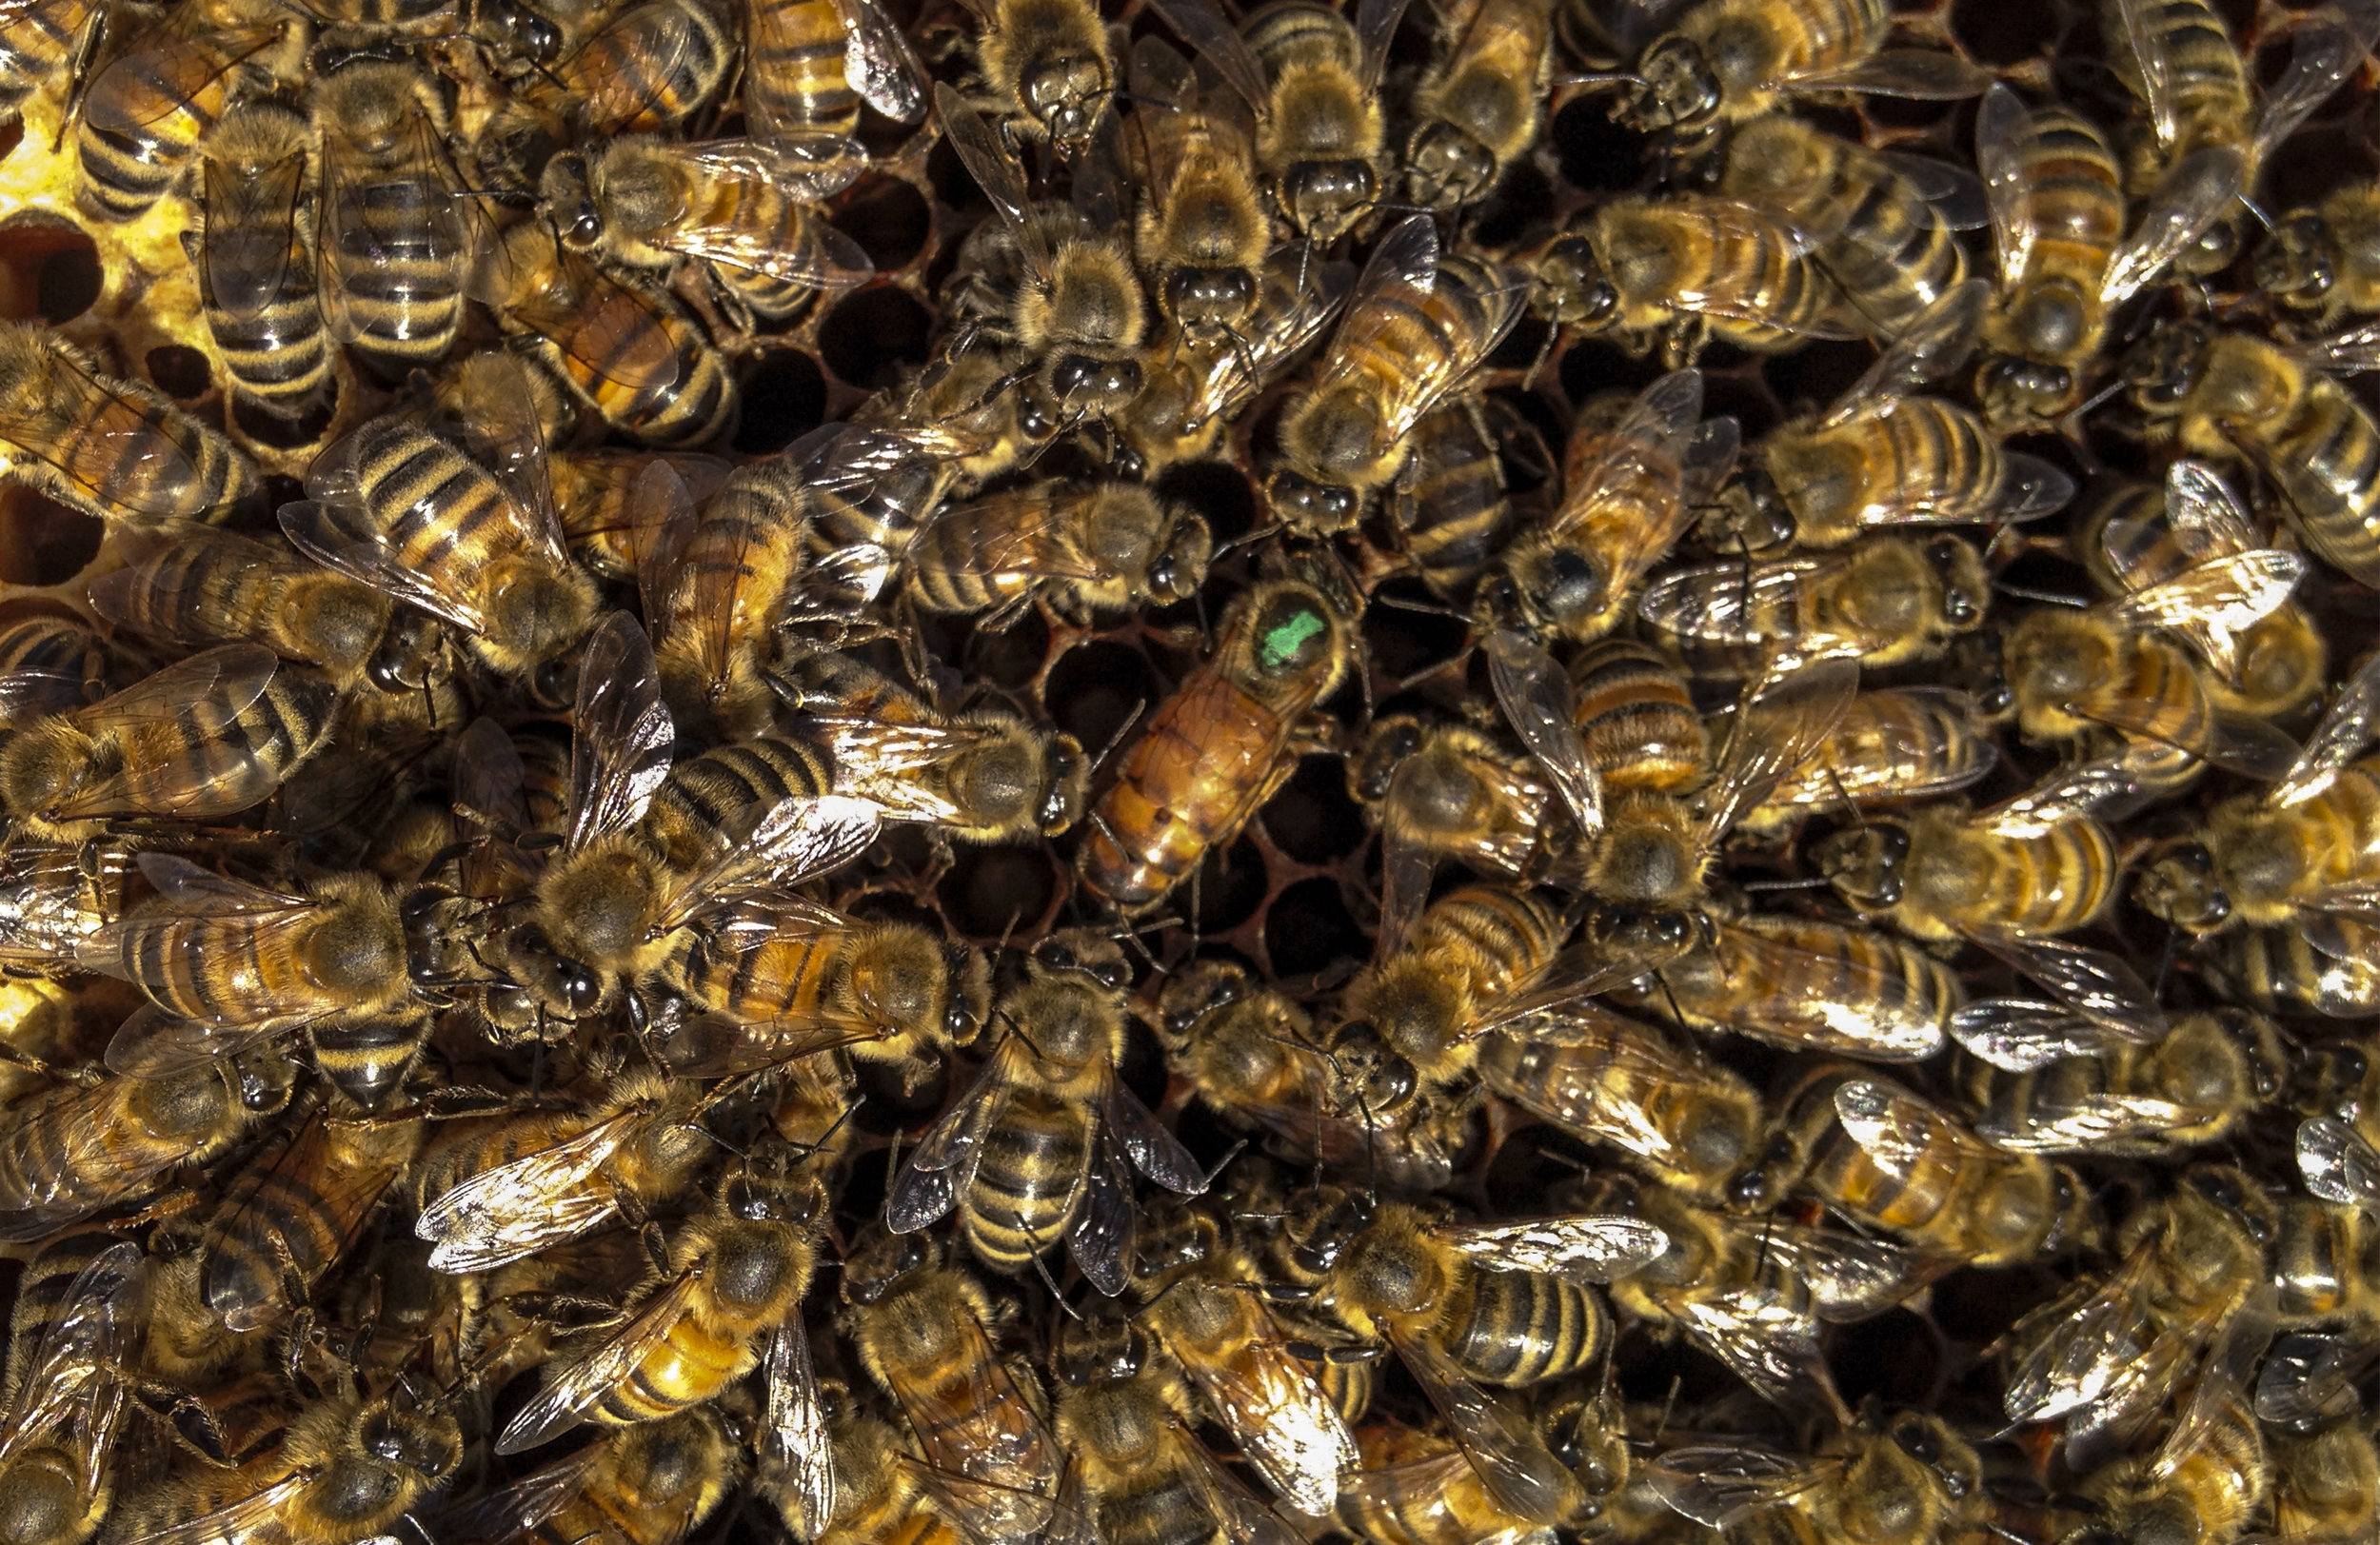 The royal queen in the center of her worker bees